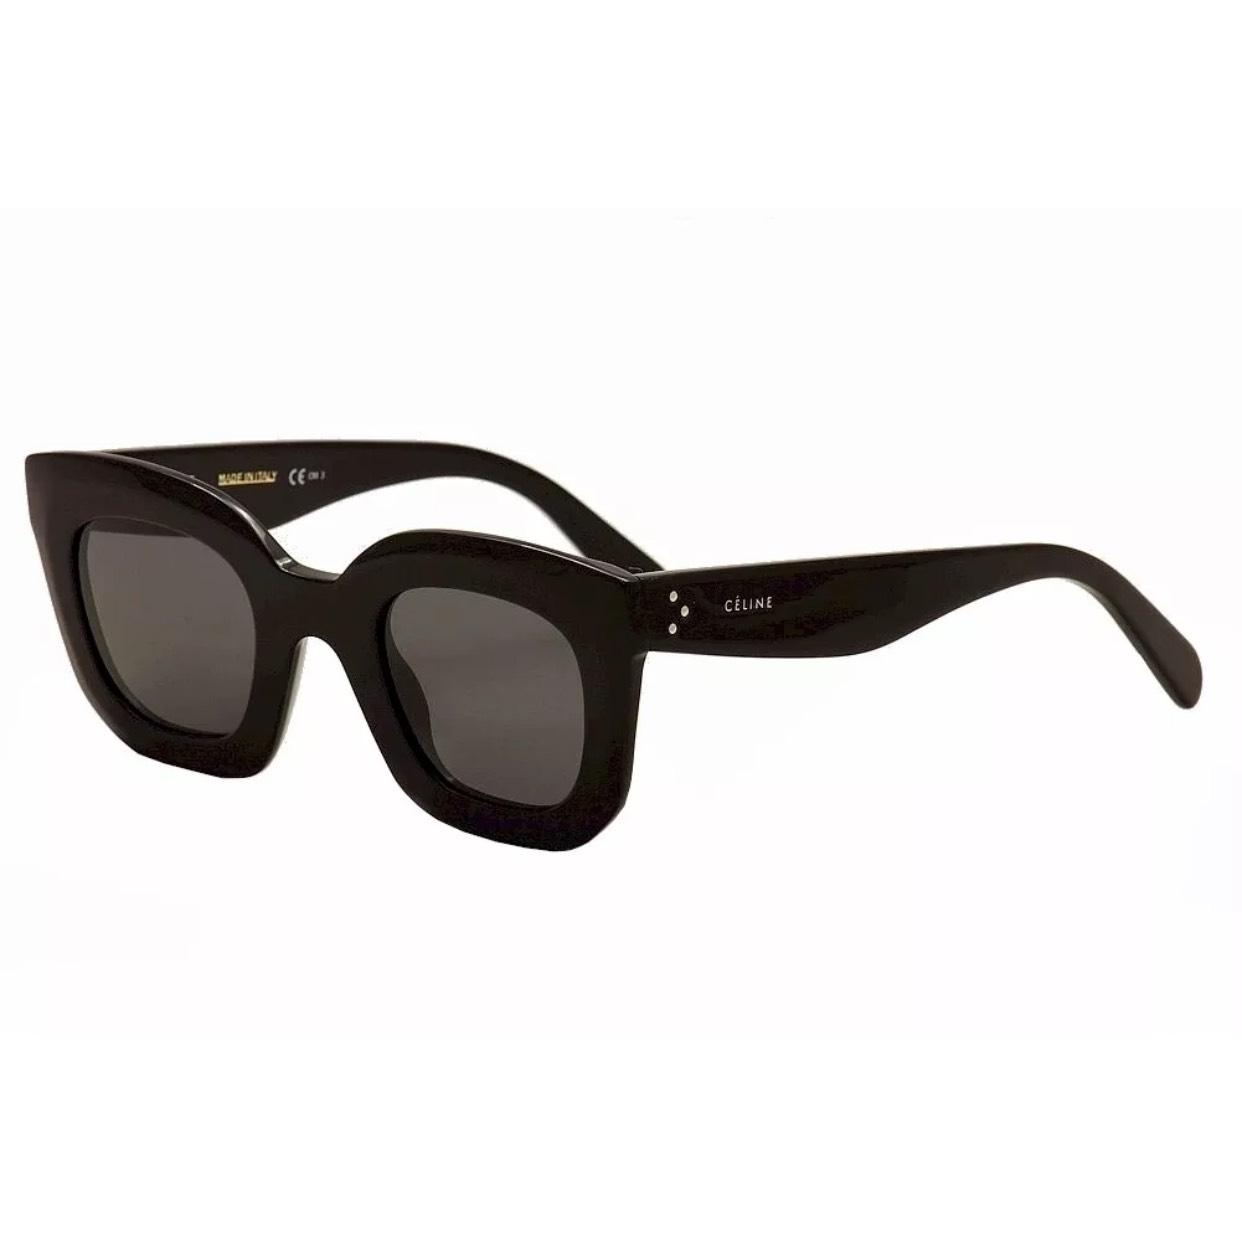 bffab804156 Amazon.com  Celine 41805 S Sunglasses-0807 Black (HA Brown ...